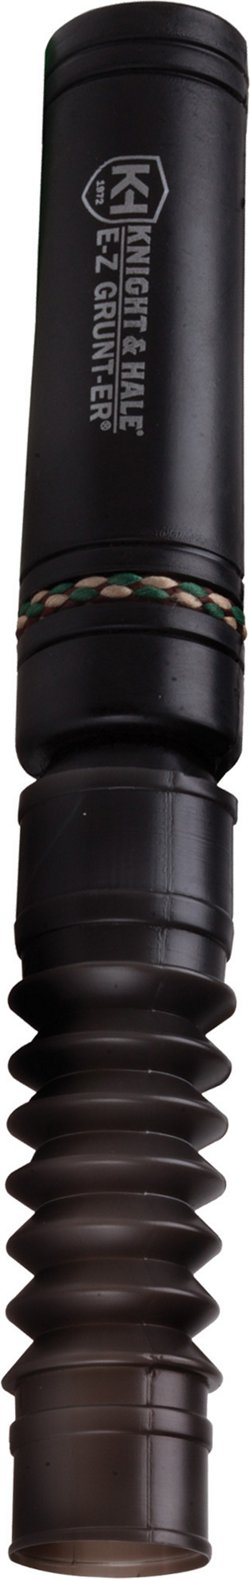 Knight & Hale EZ Grunter Deer Call